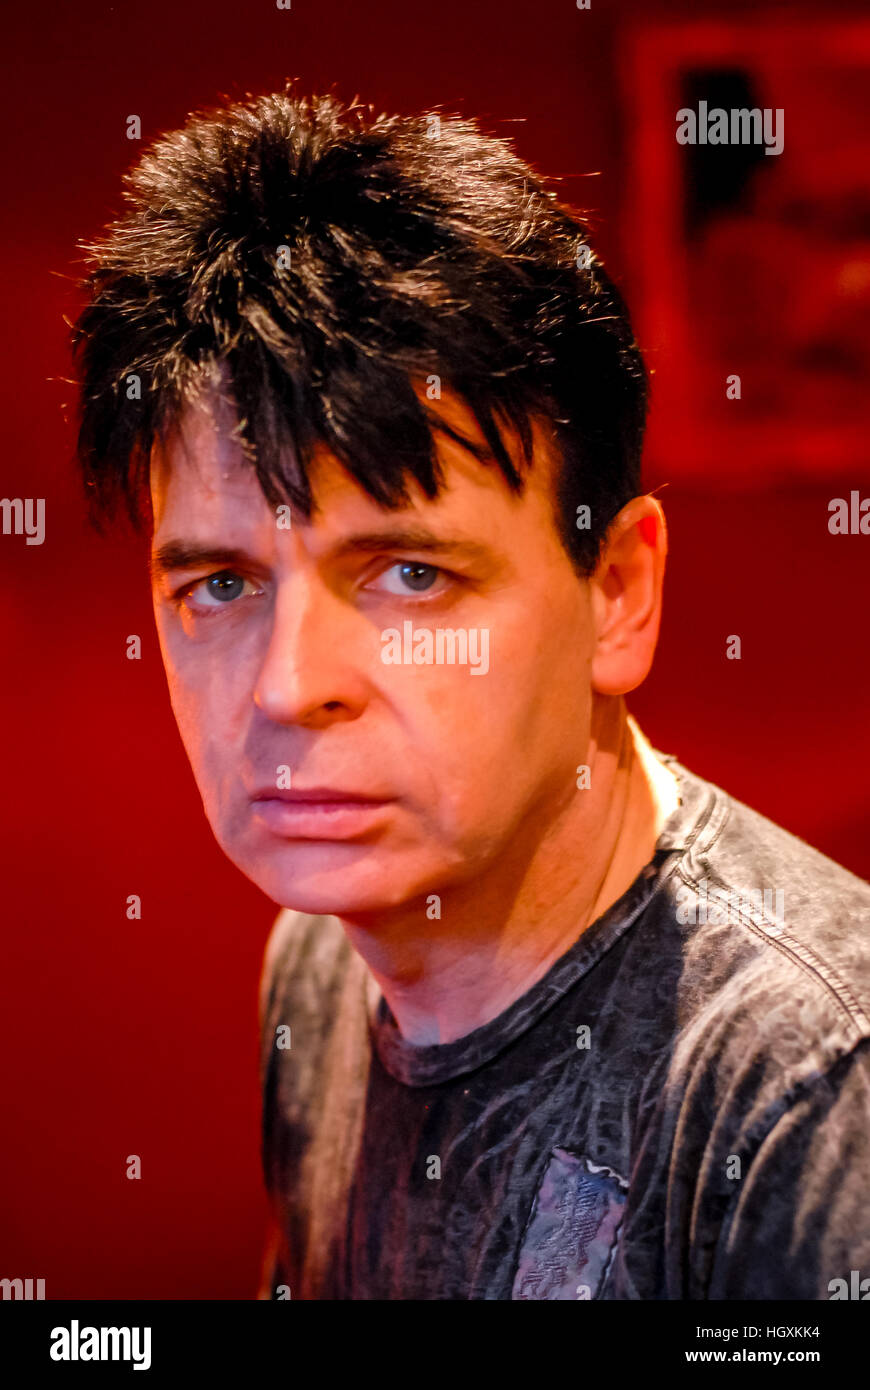 Musician Gary Numan, at home in Waldron, East Sussex. - Stock Image